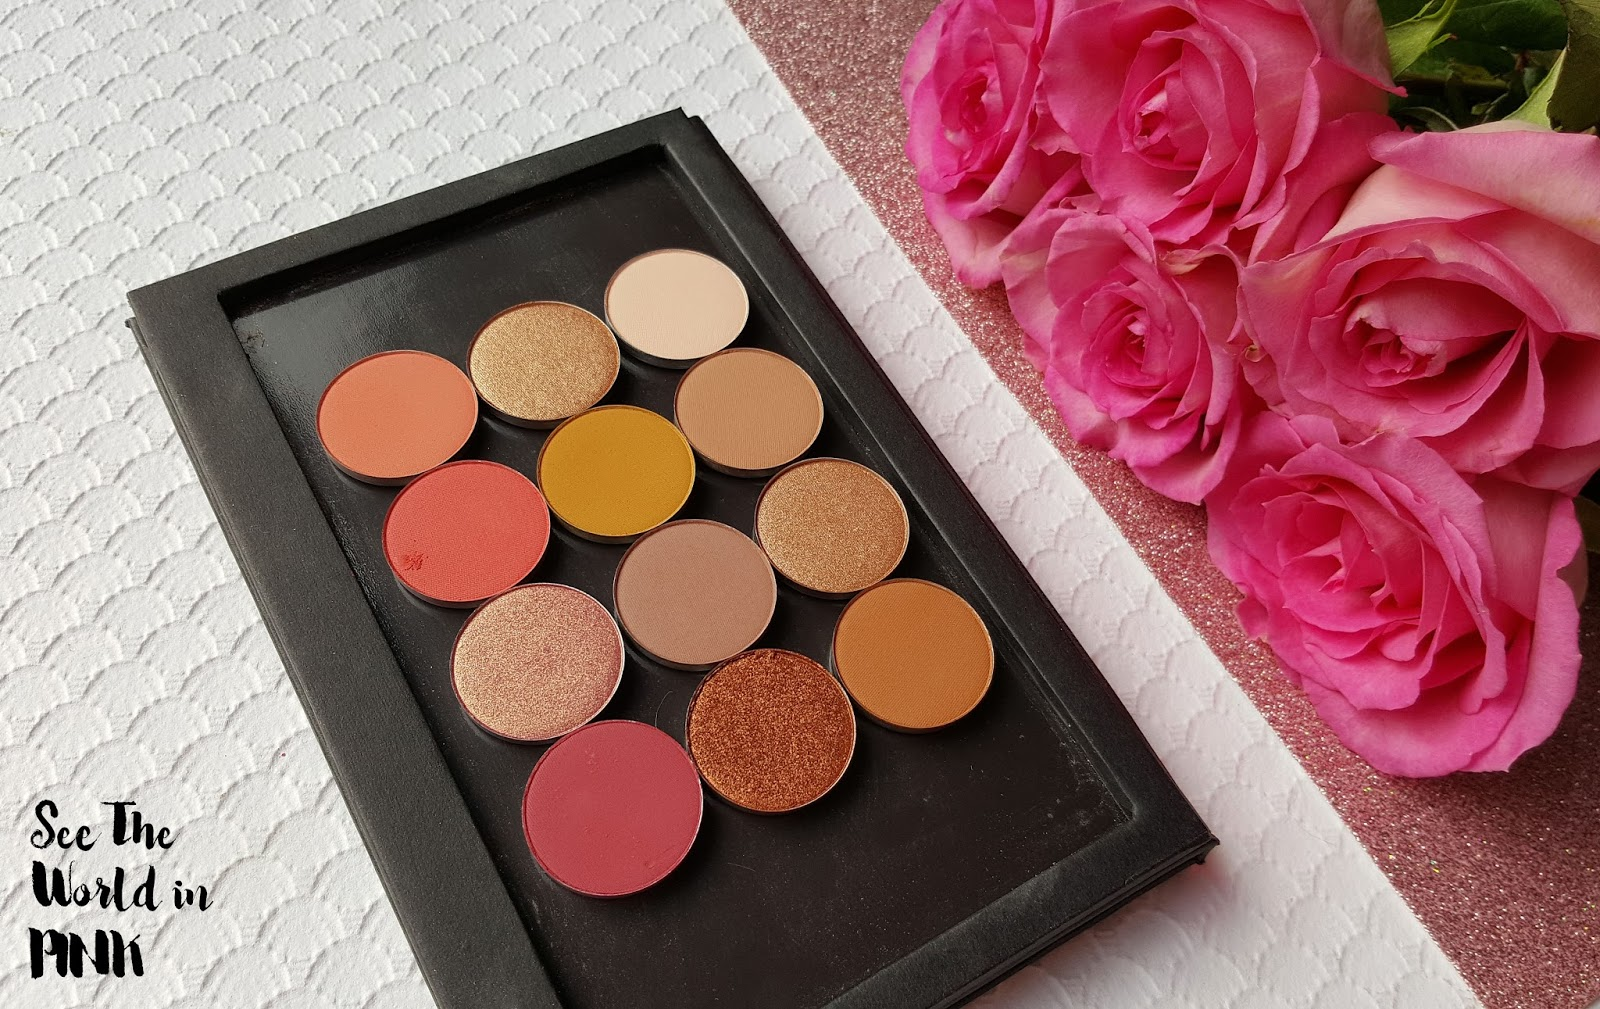 ColourPop Single Pressed Powder Eye Shadows - Swatches, Review and a Sunset Inspired Makeup Look!